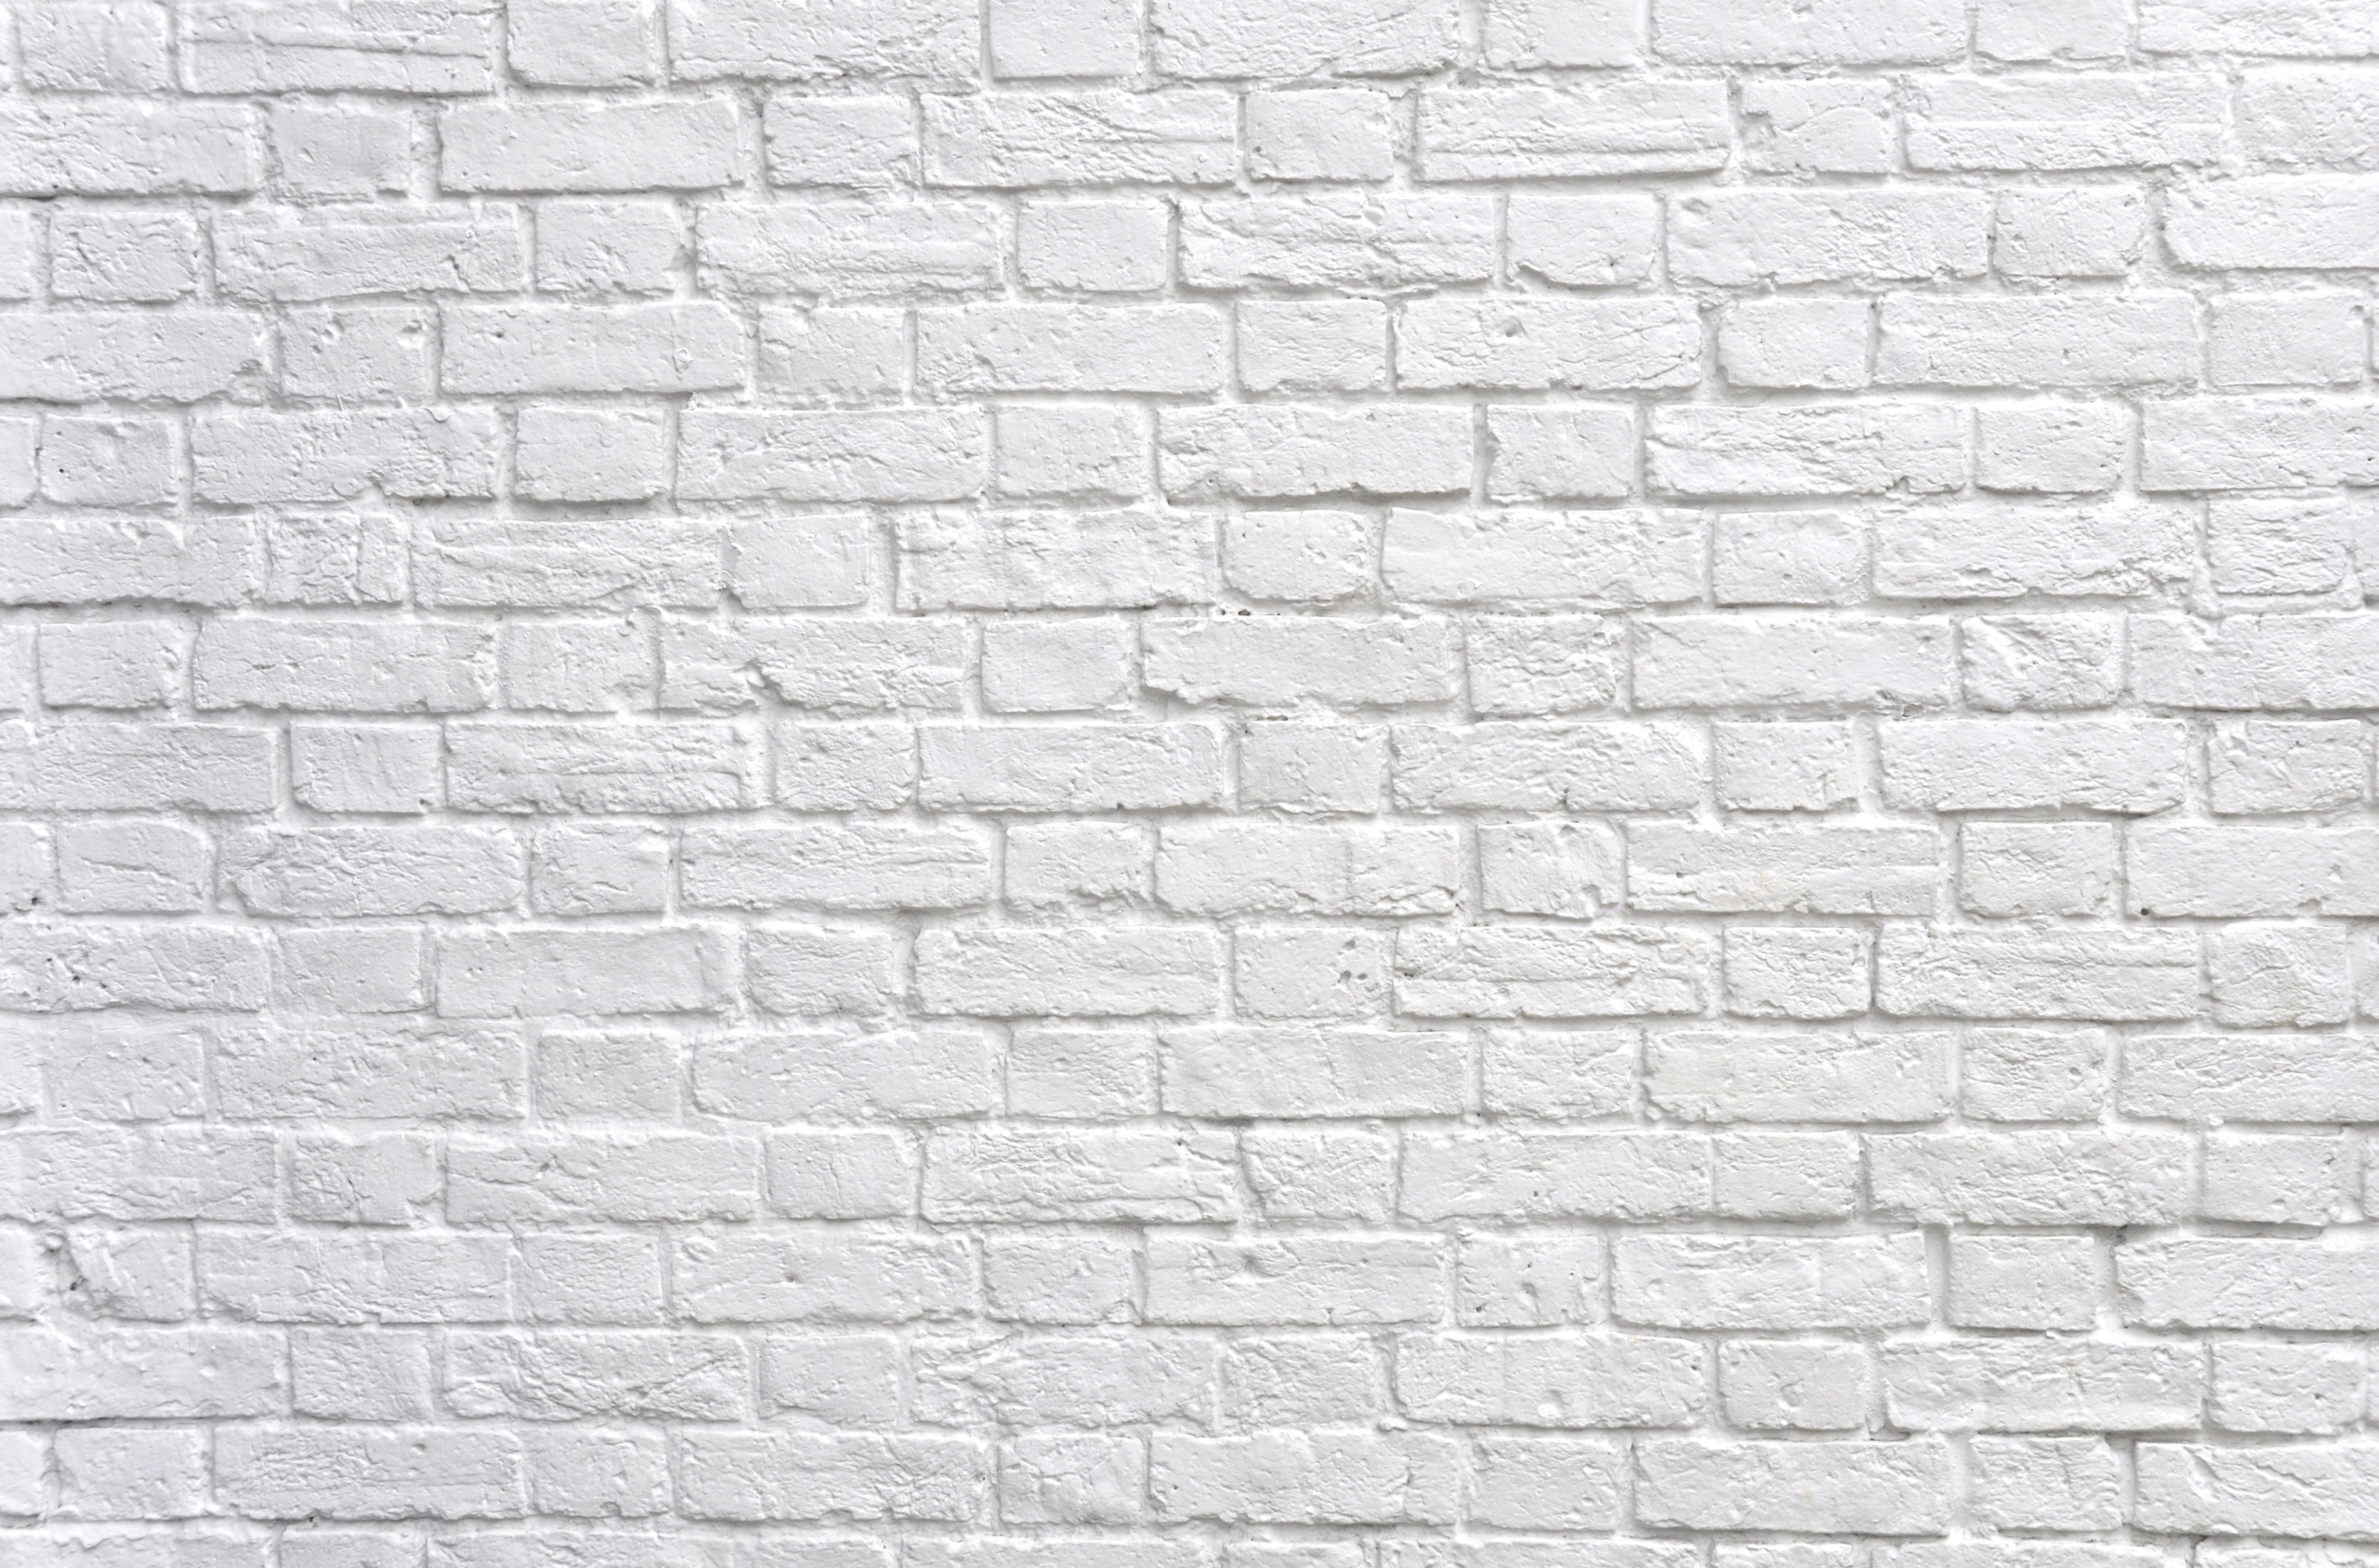 Black Brick Wall Black And White Brick Wall Background White Brick Wall